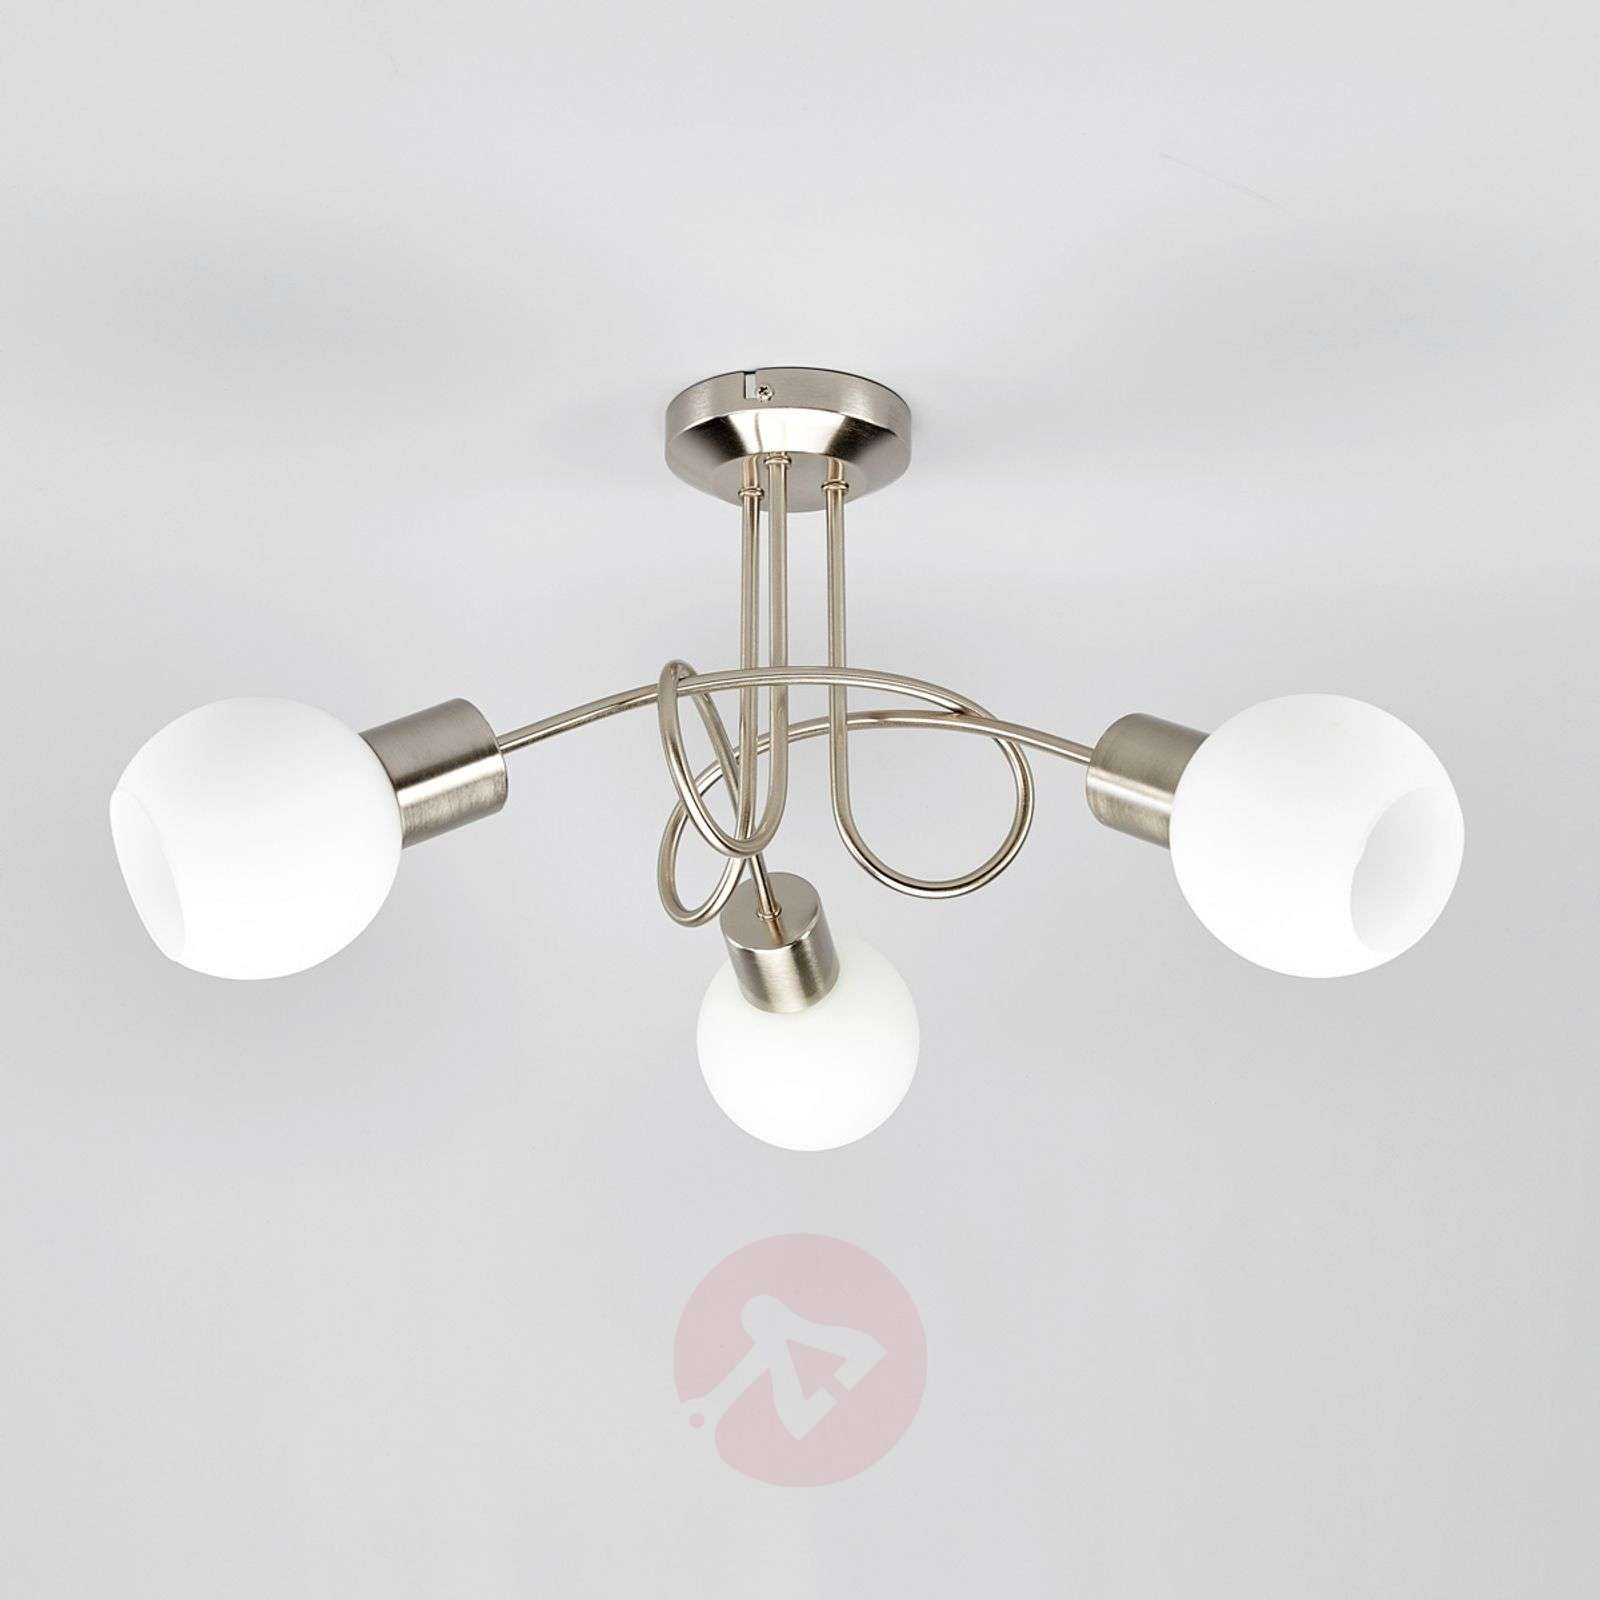 Three-bulb LED ceiling light Elaina, matt nickel-9620029-01